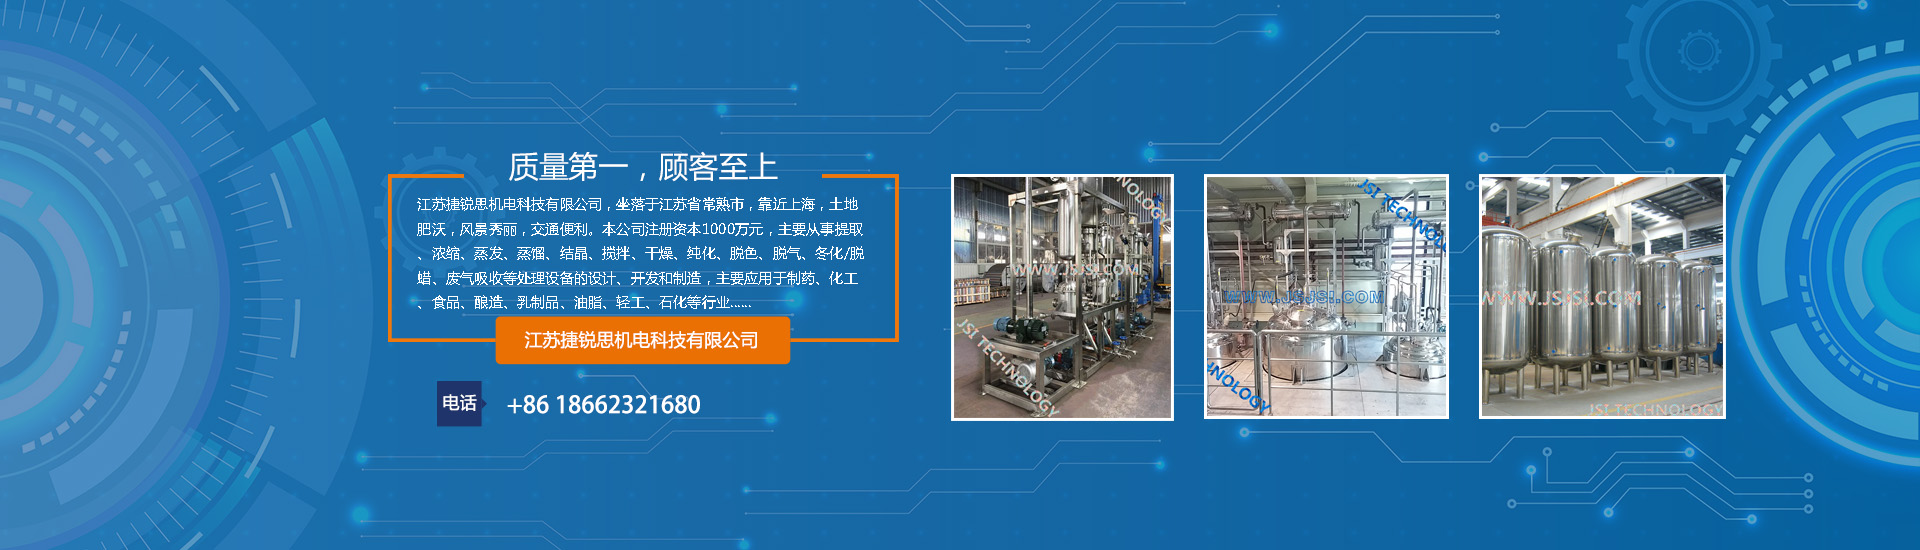 JIANGSU JSI TECHNOLOGY CO., LTD.